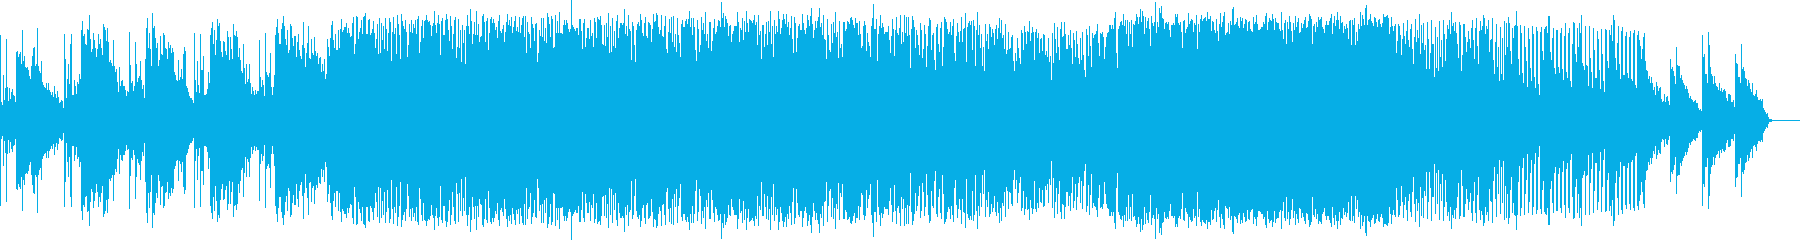 Sports, News, or Media's reproduced waveform